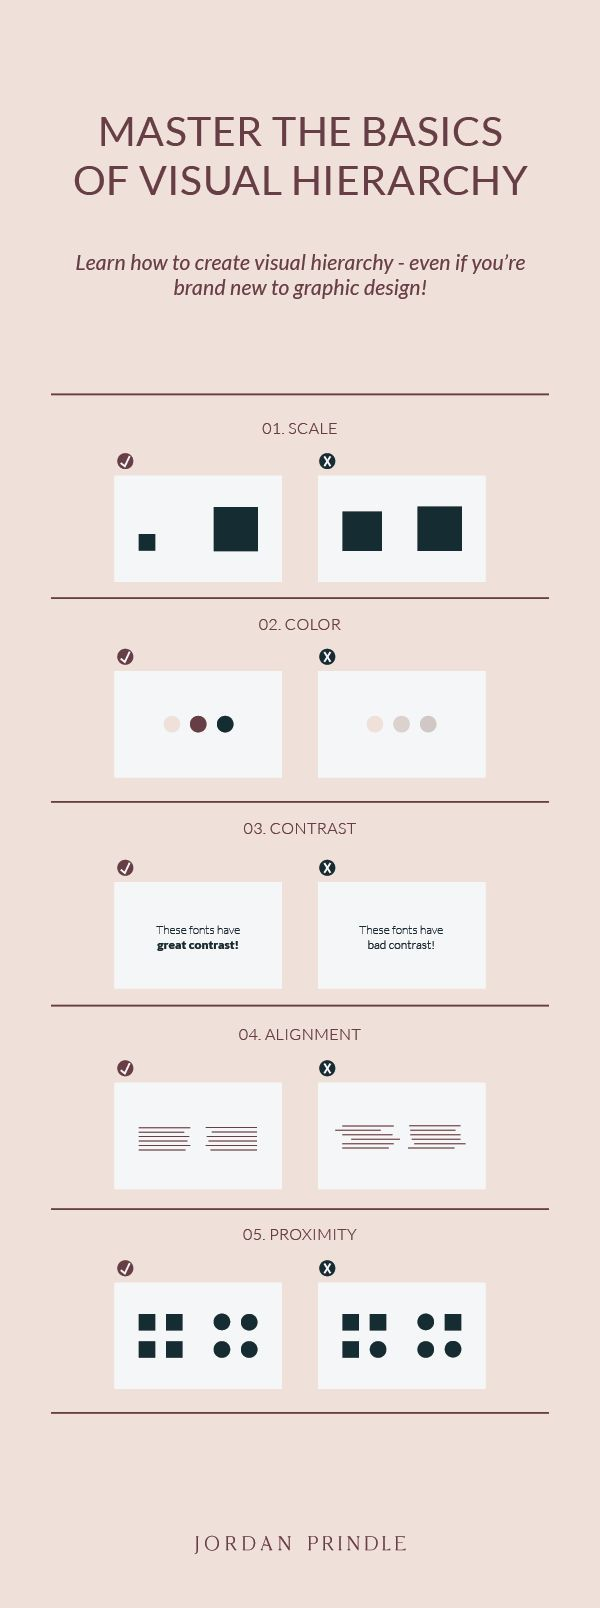 Learn The Basics Of Visual Hierarchy In Graphic Design Jordan Prindle Designs Brand And Squarespace Designer For Entrepreneurs Learning Graphic Design Visual Hierarchy Graphic Design